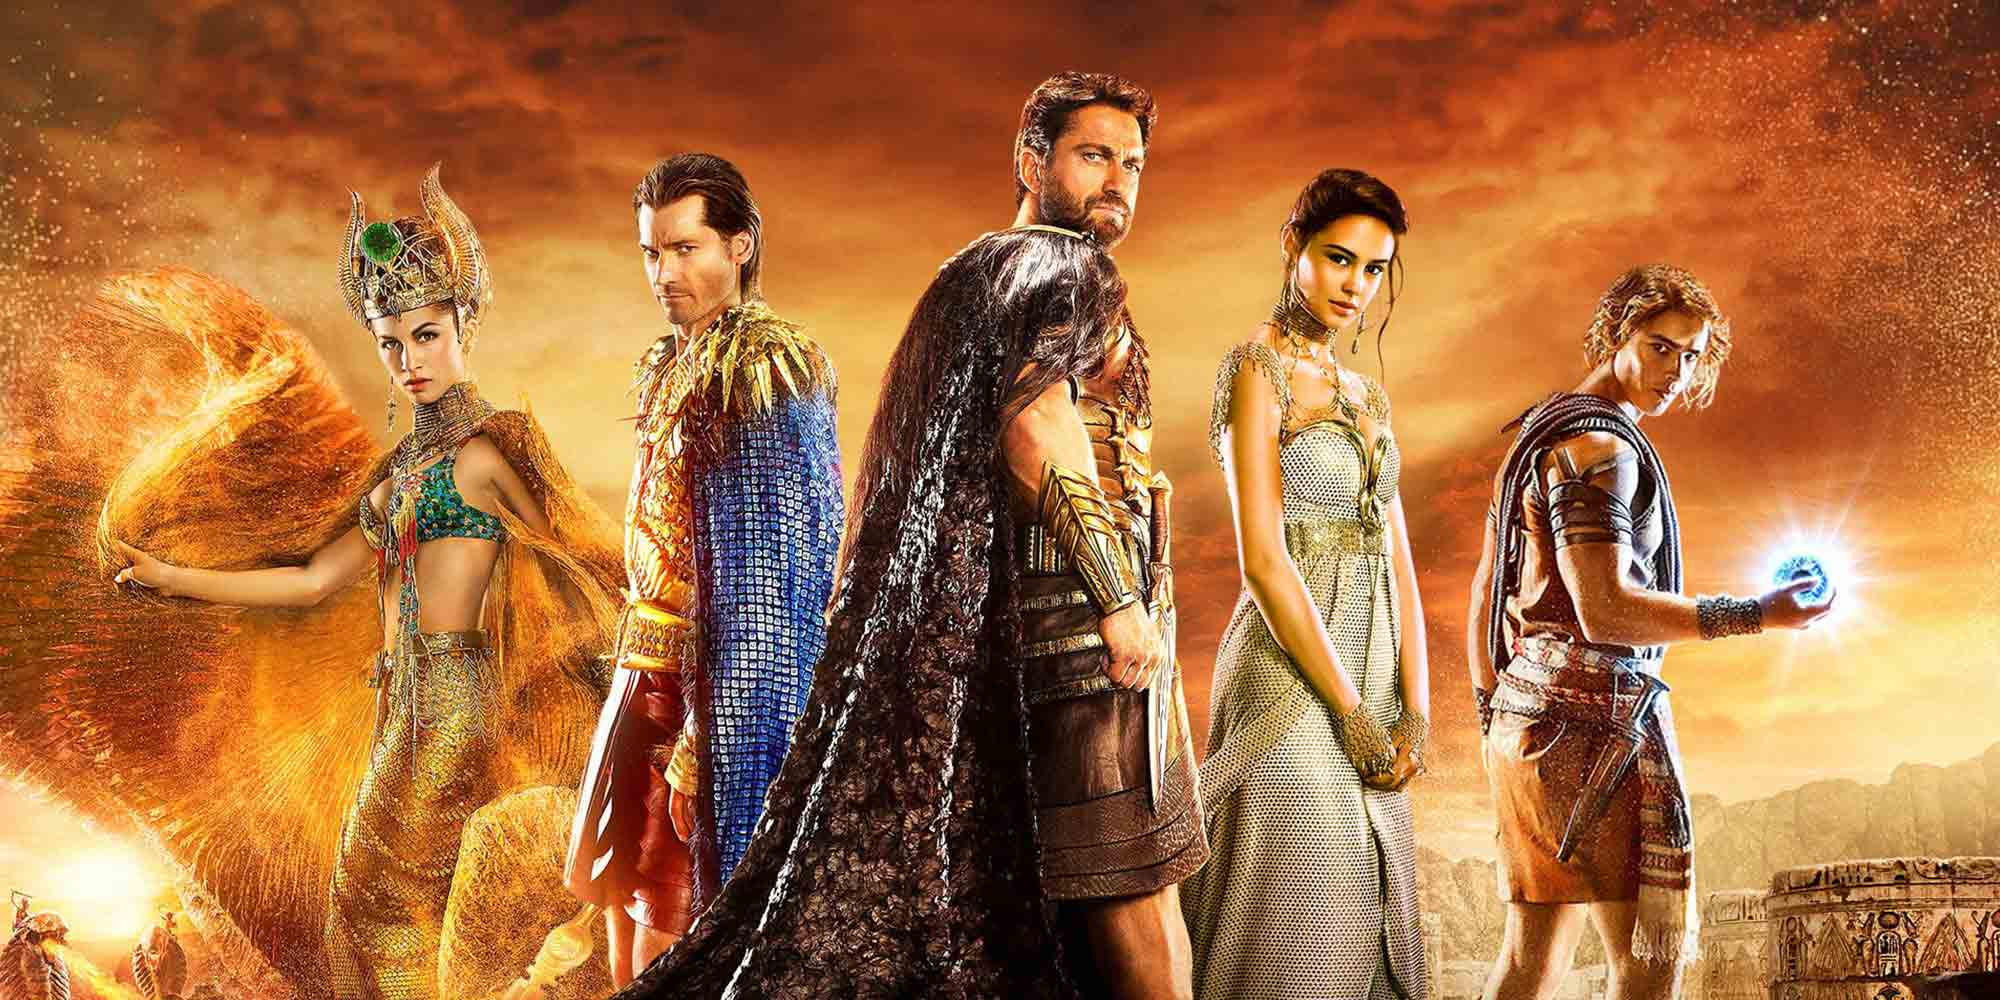 Gods of Egypt - Header Image